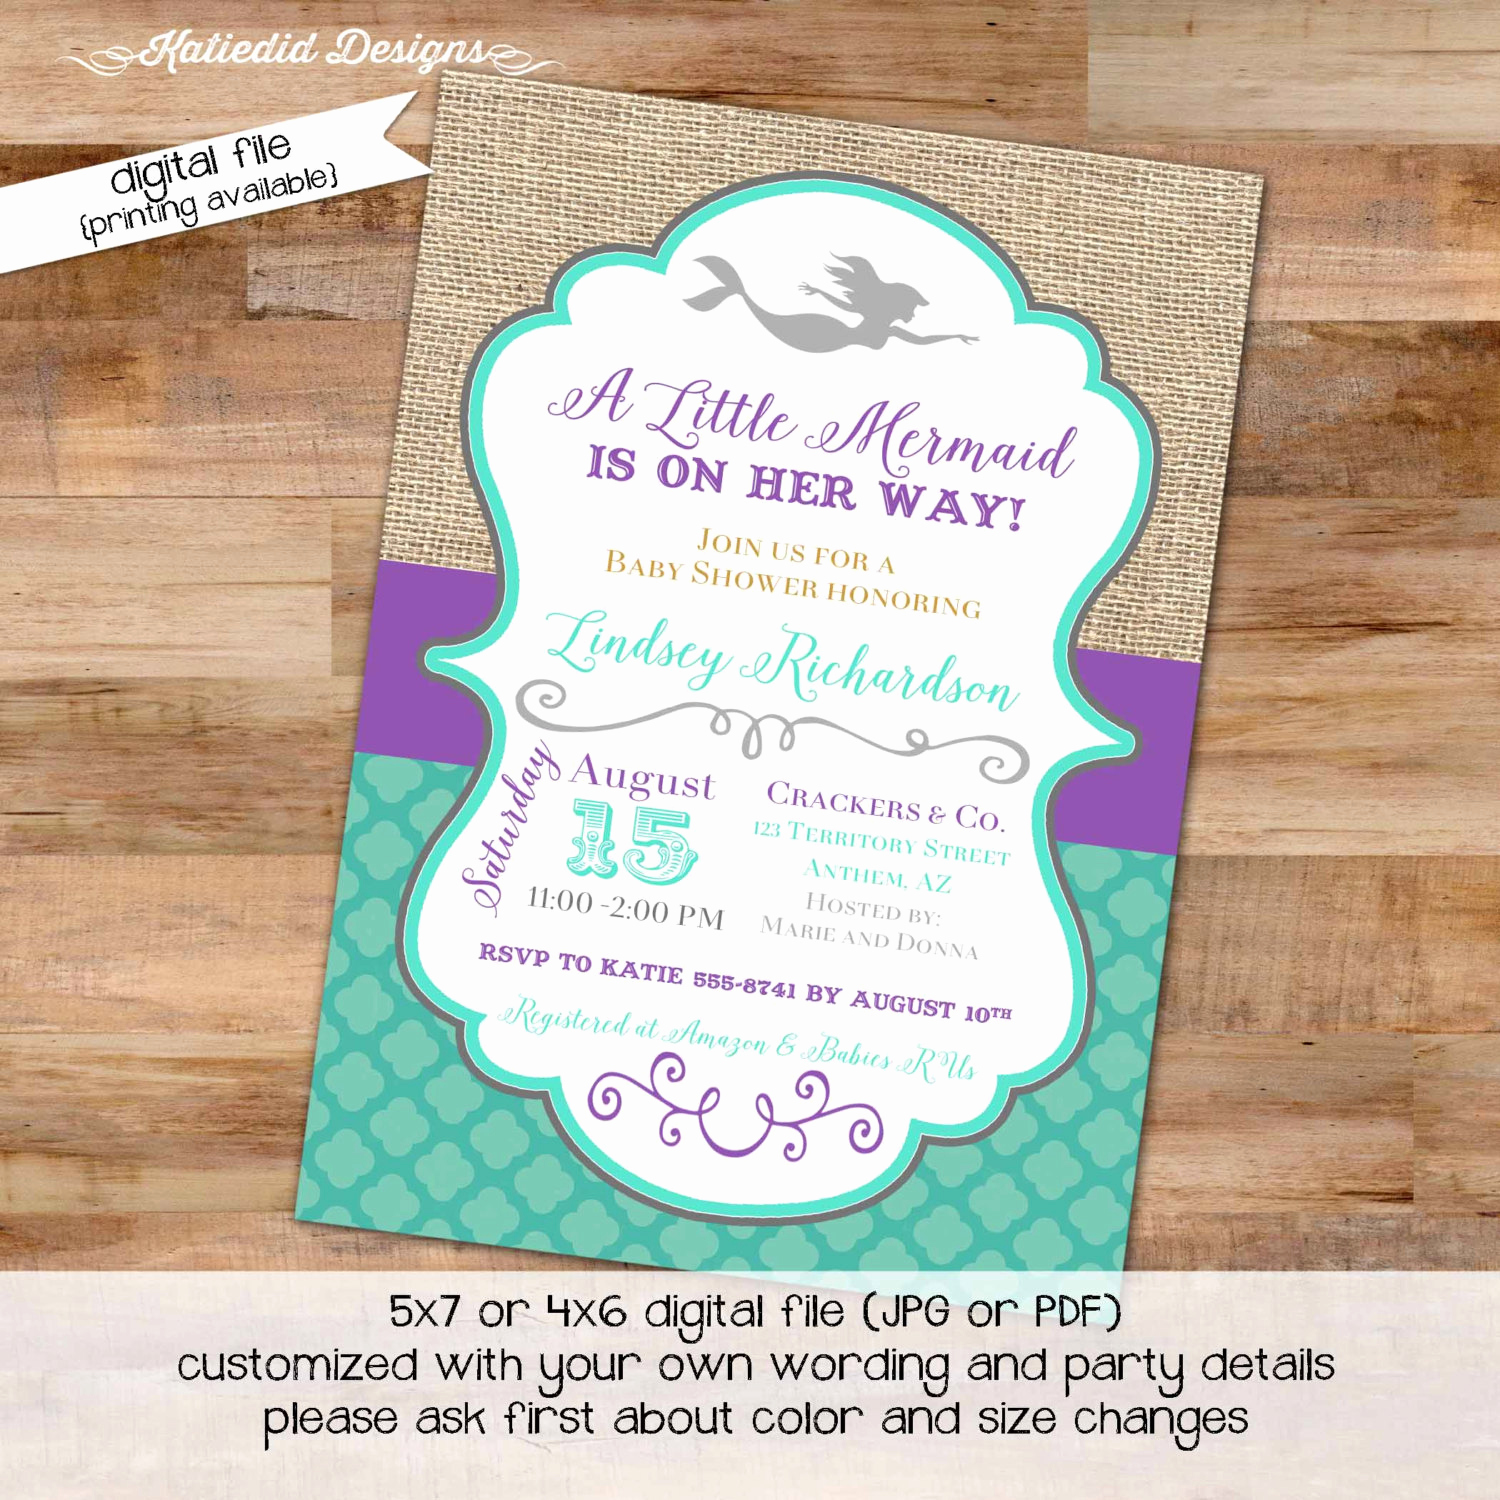 Mermaid Baby Shower Invitation Wording Inspirational Mermaid Baby Shower Invitation Bridal Shower Under the Sea